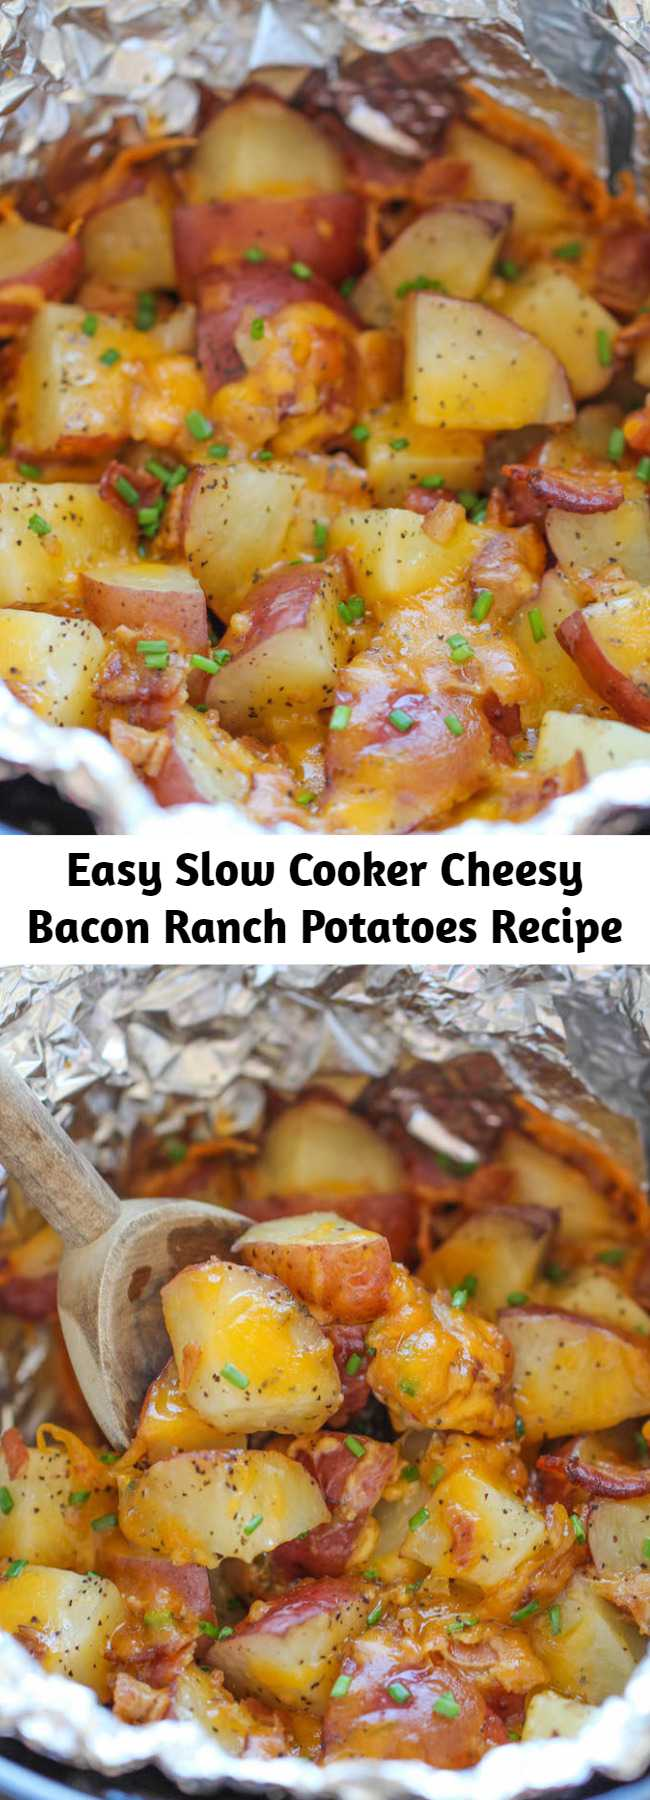 Easy Slow Cooker Cheesy Bacon Ranch Potatoes Recipe - The easiest potatoes you can make right in the crockpot – perfectly tender, flavorful and cheesy!